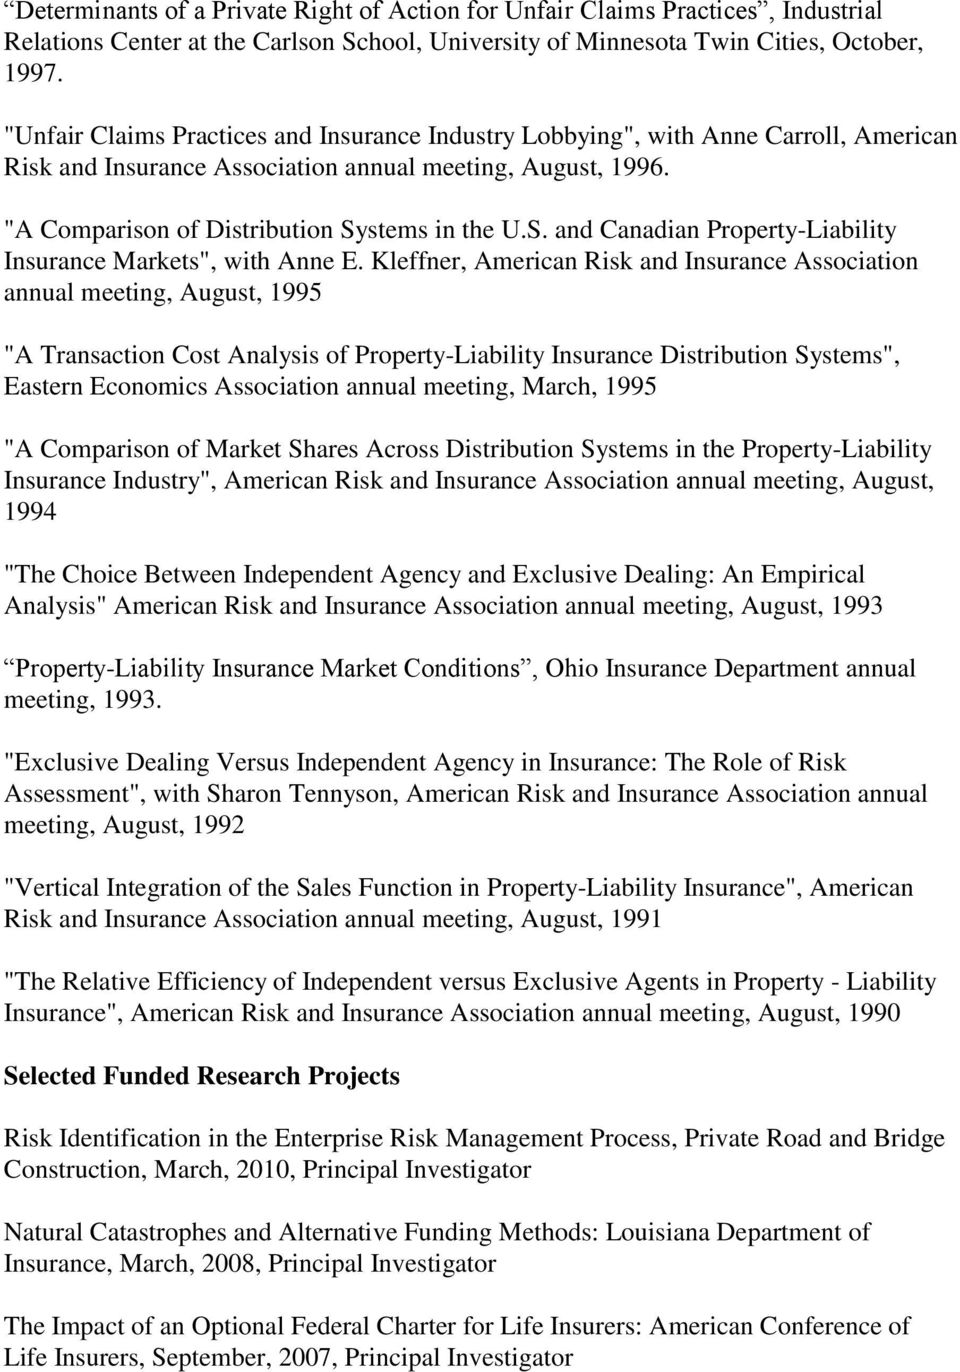 "stems in the U.S. and Canadian Property-Liability Insurance Markets"", with Anne E."